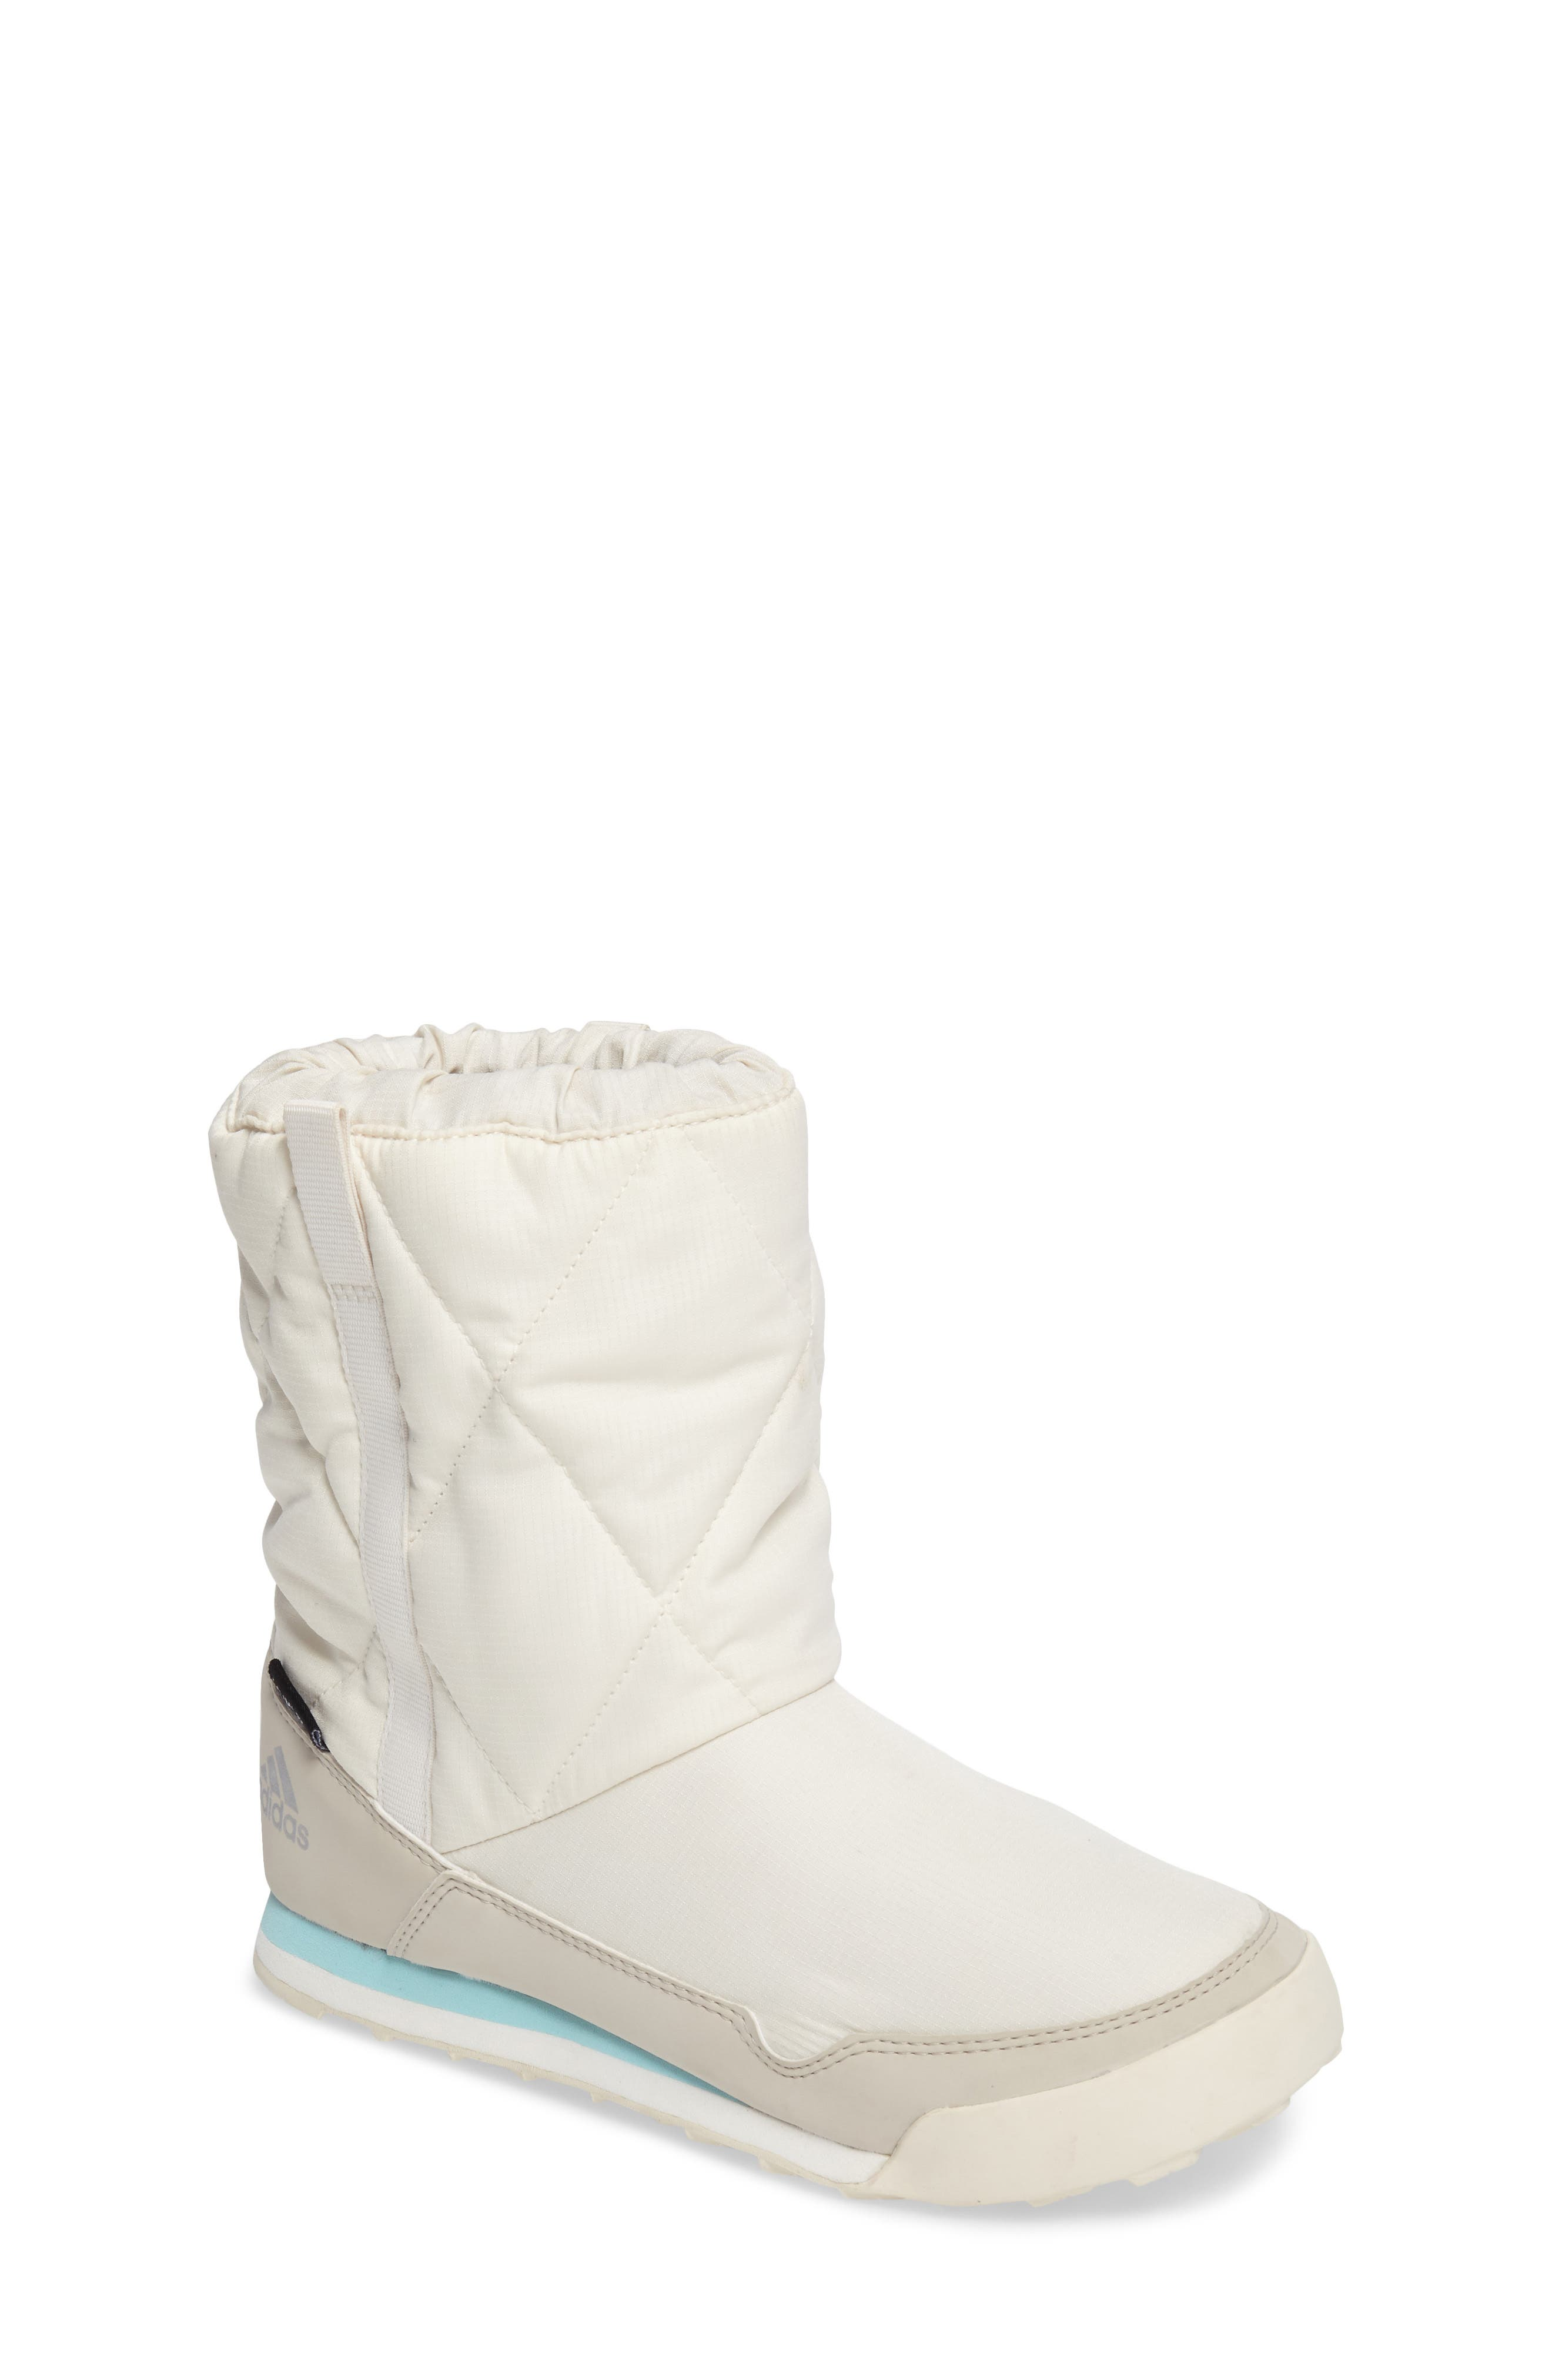 Alternate Image 1 Selected - adidas CW Snowpitch Insulated Waterproof Boot (Toddler, Little Kid & Big Kid)